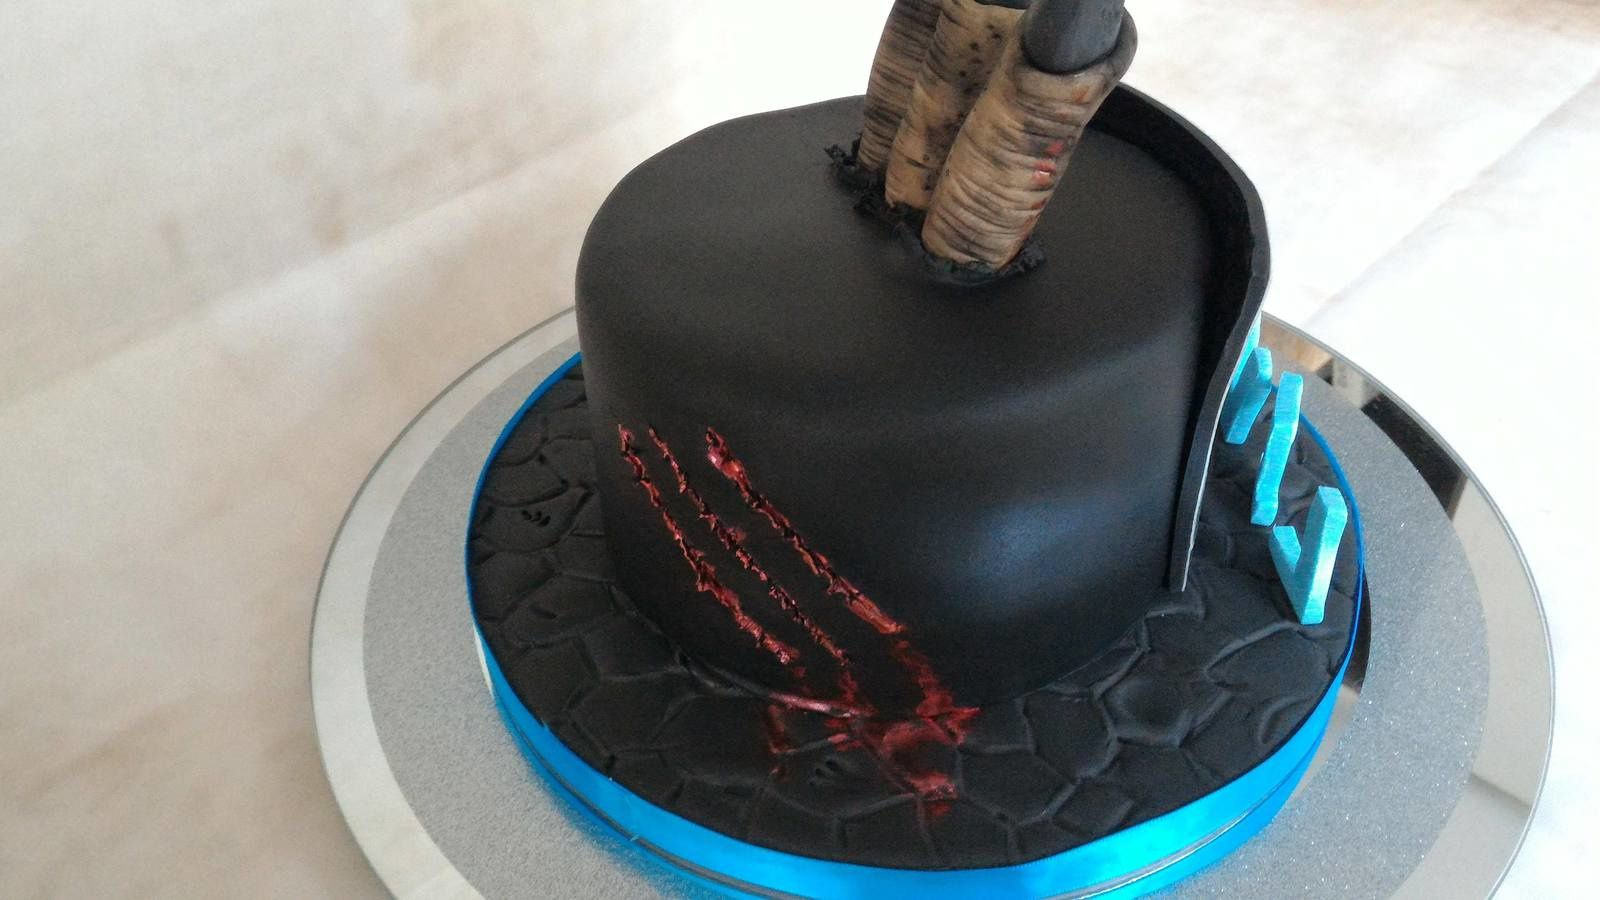 GATEAU JURASSIC WORLD